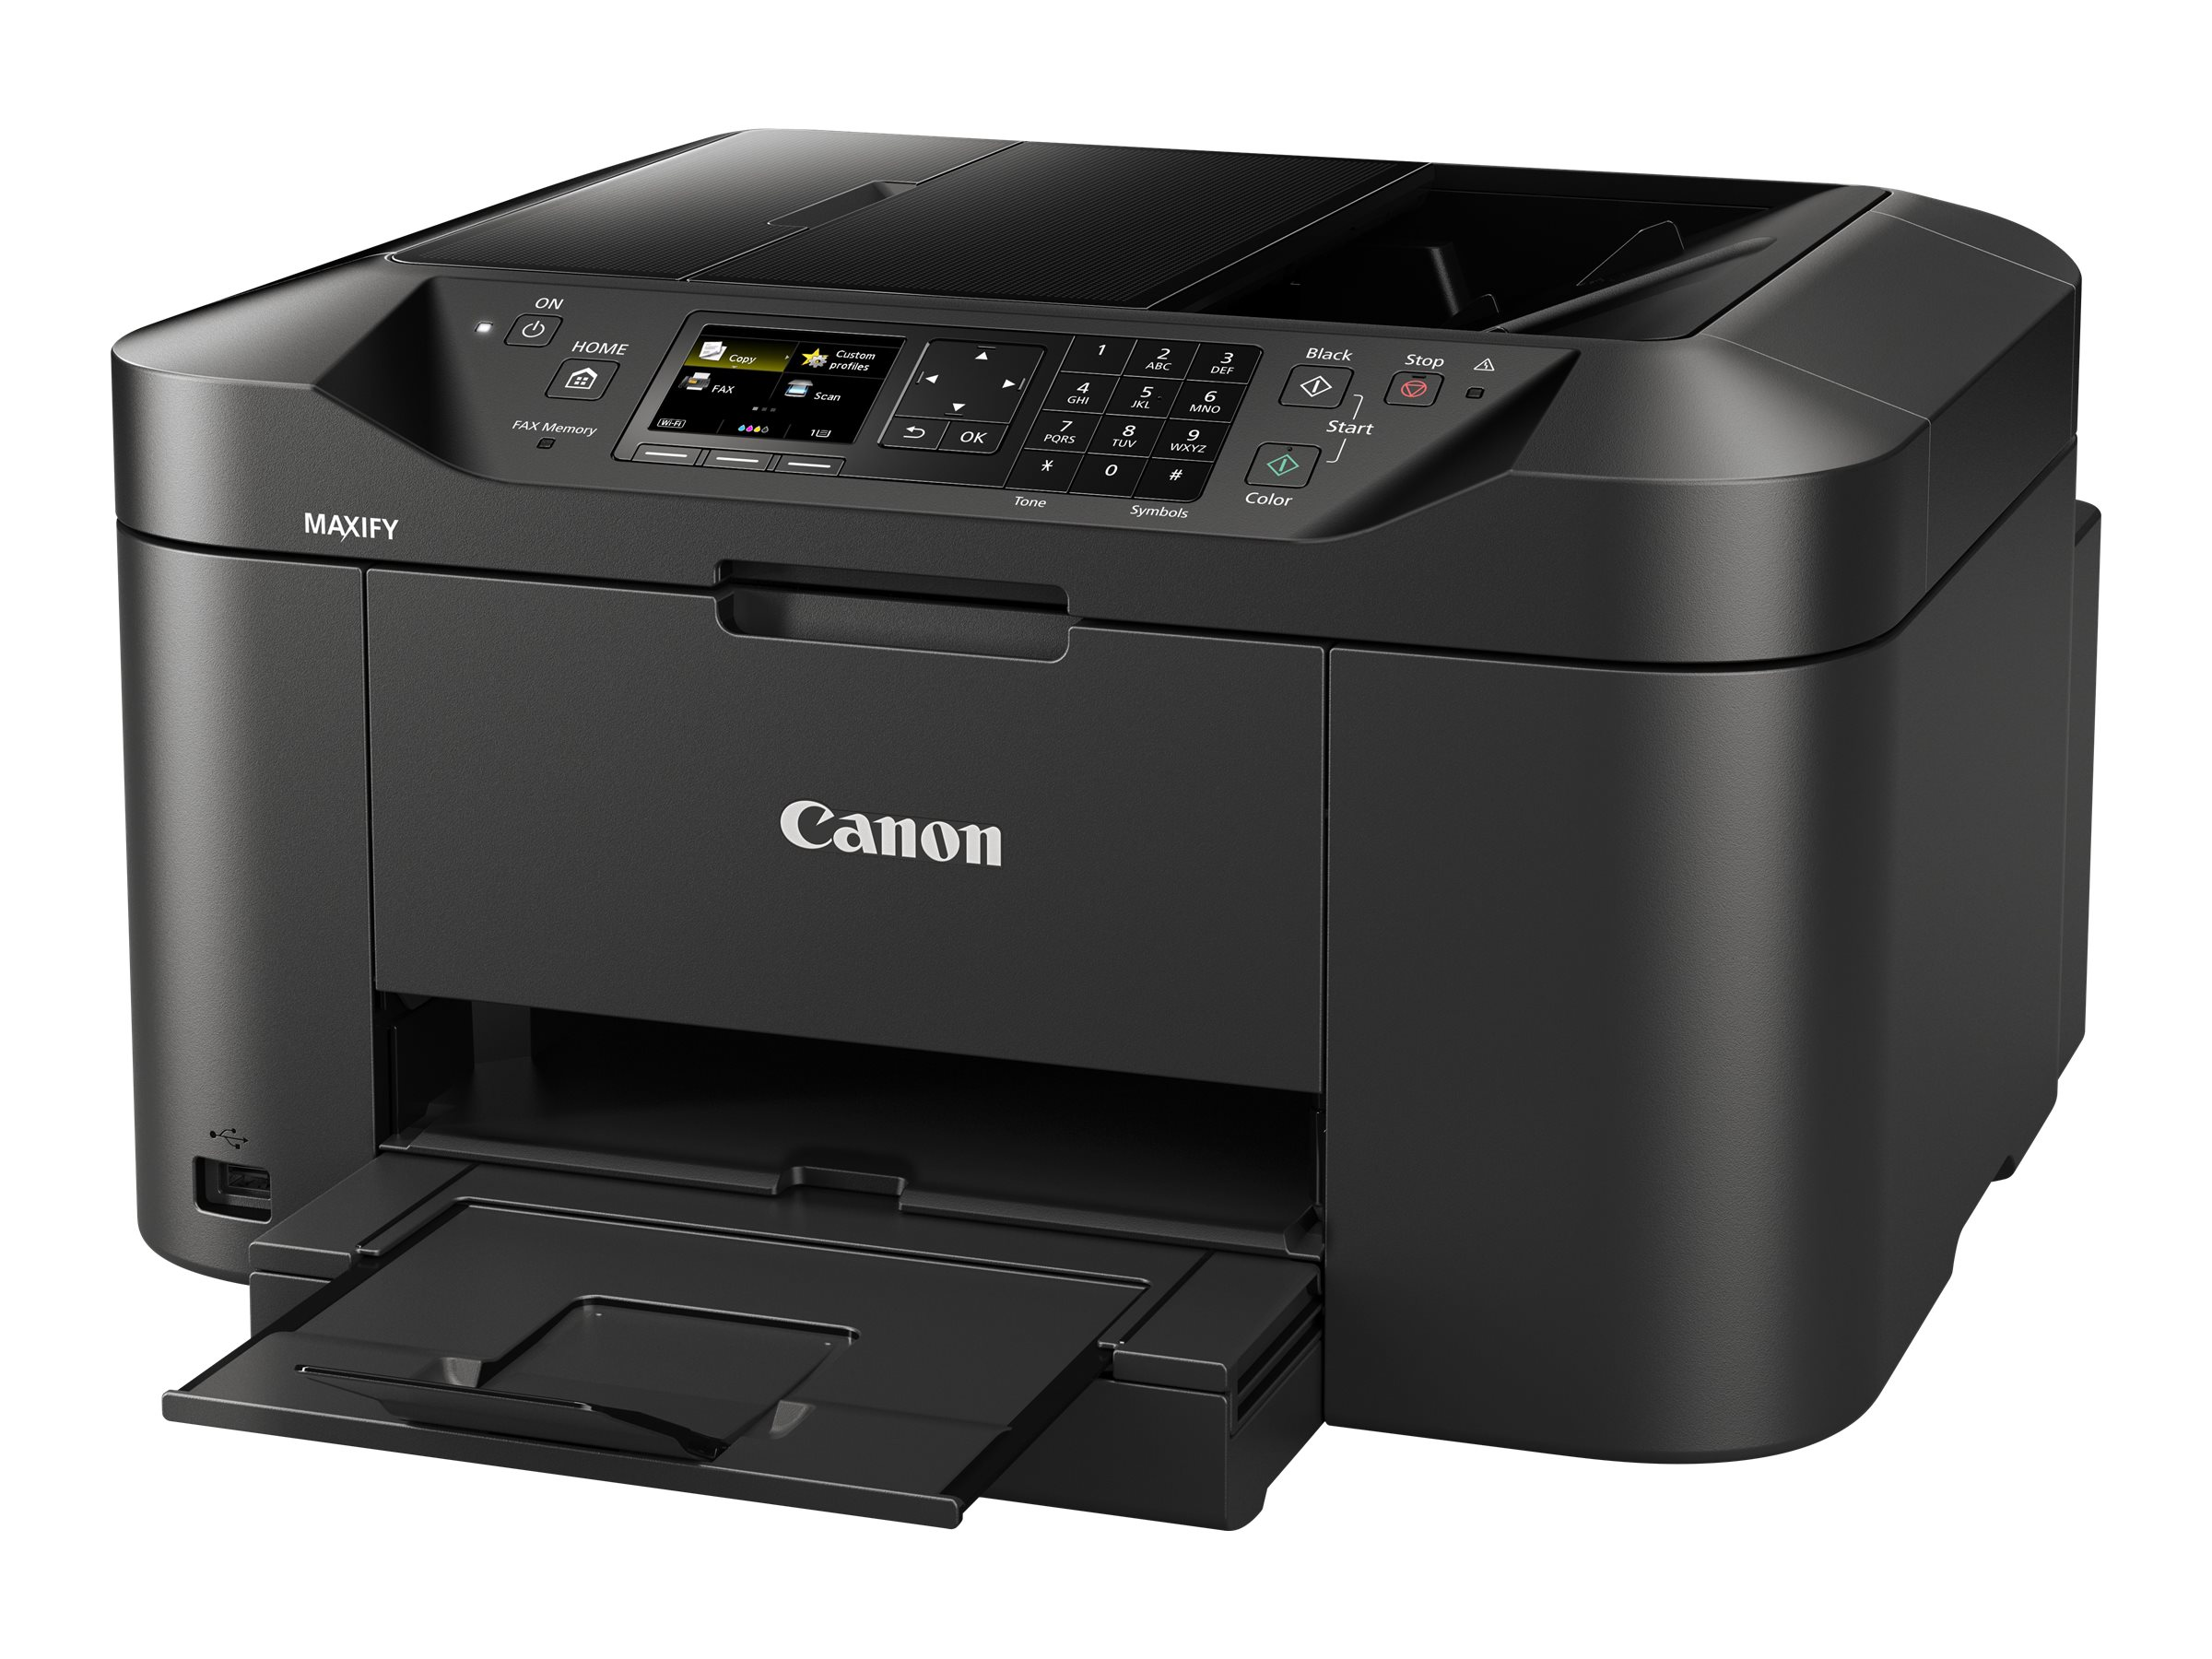 Canon MAXIFY MB2120 Wireless Home Office All-In-One Printer